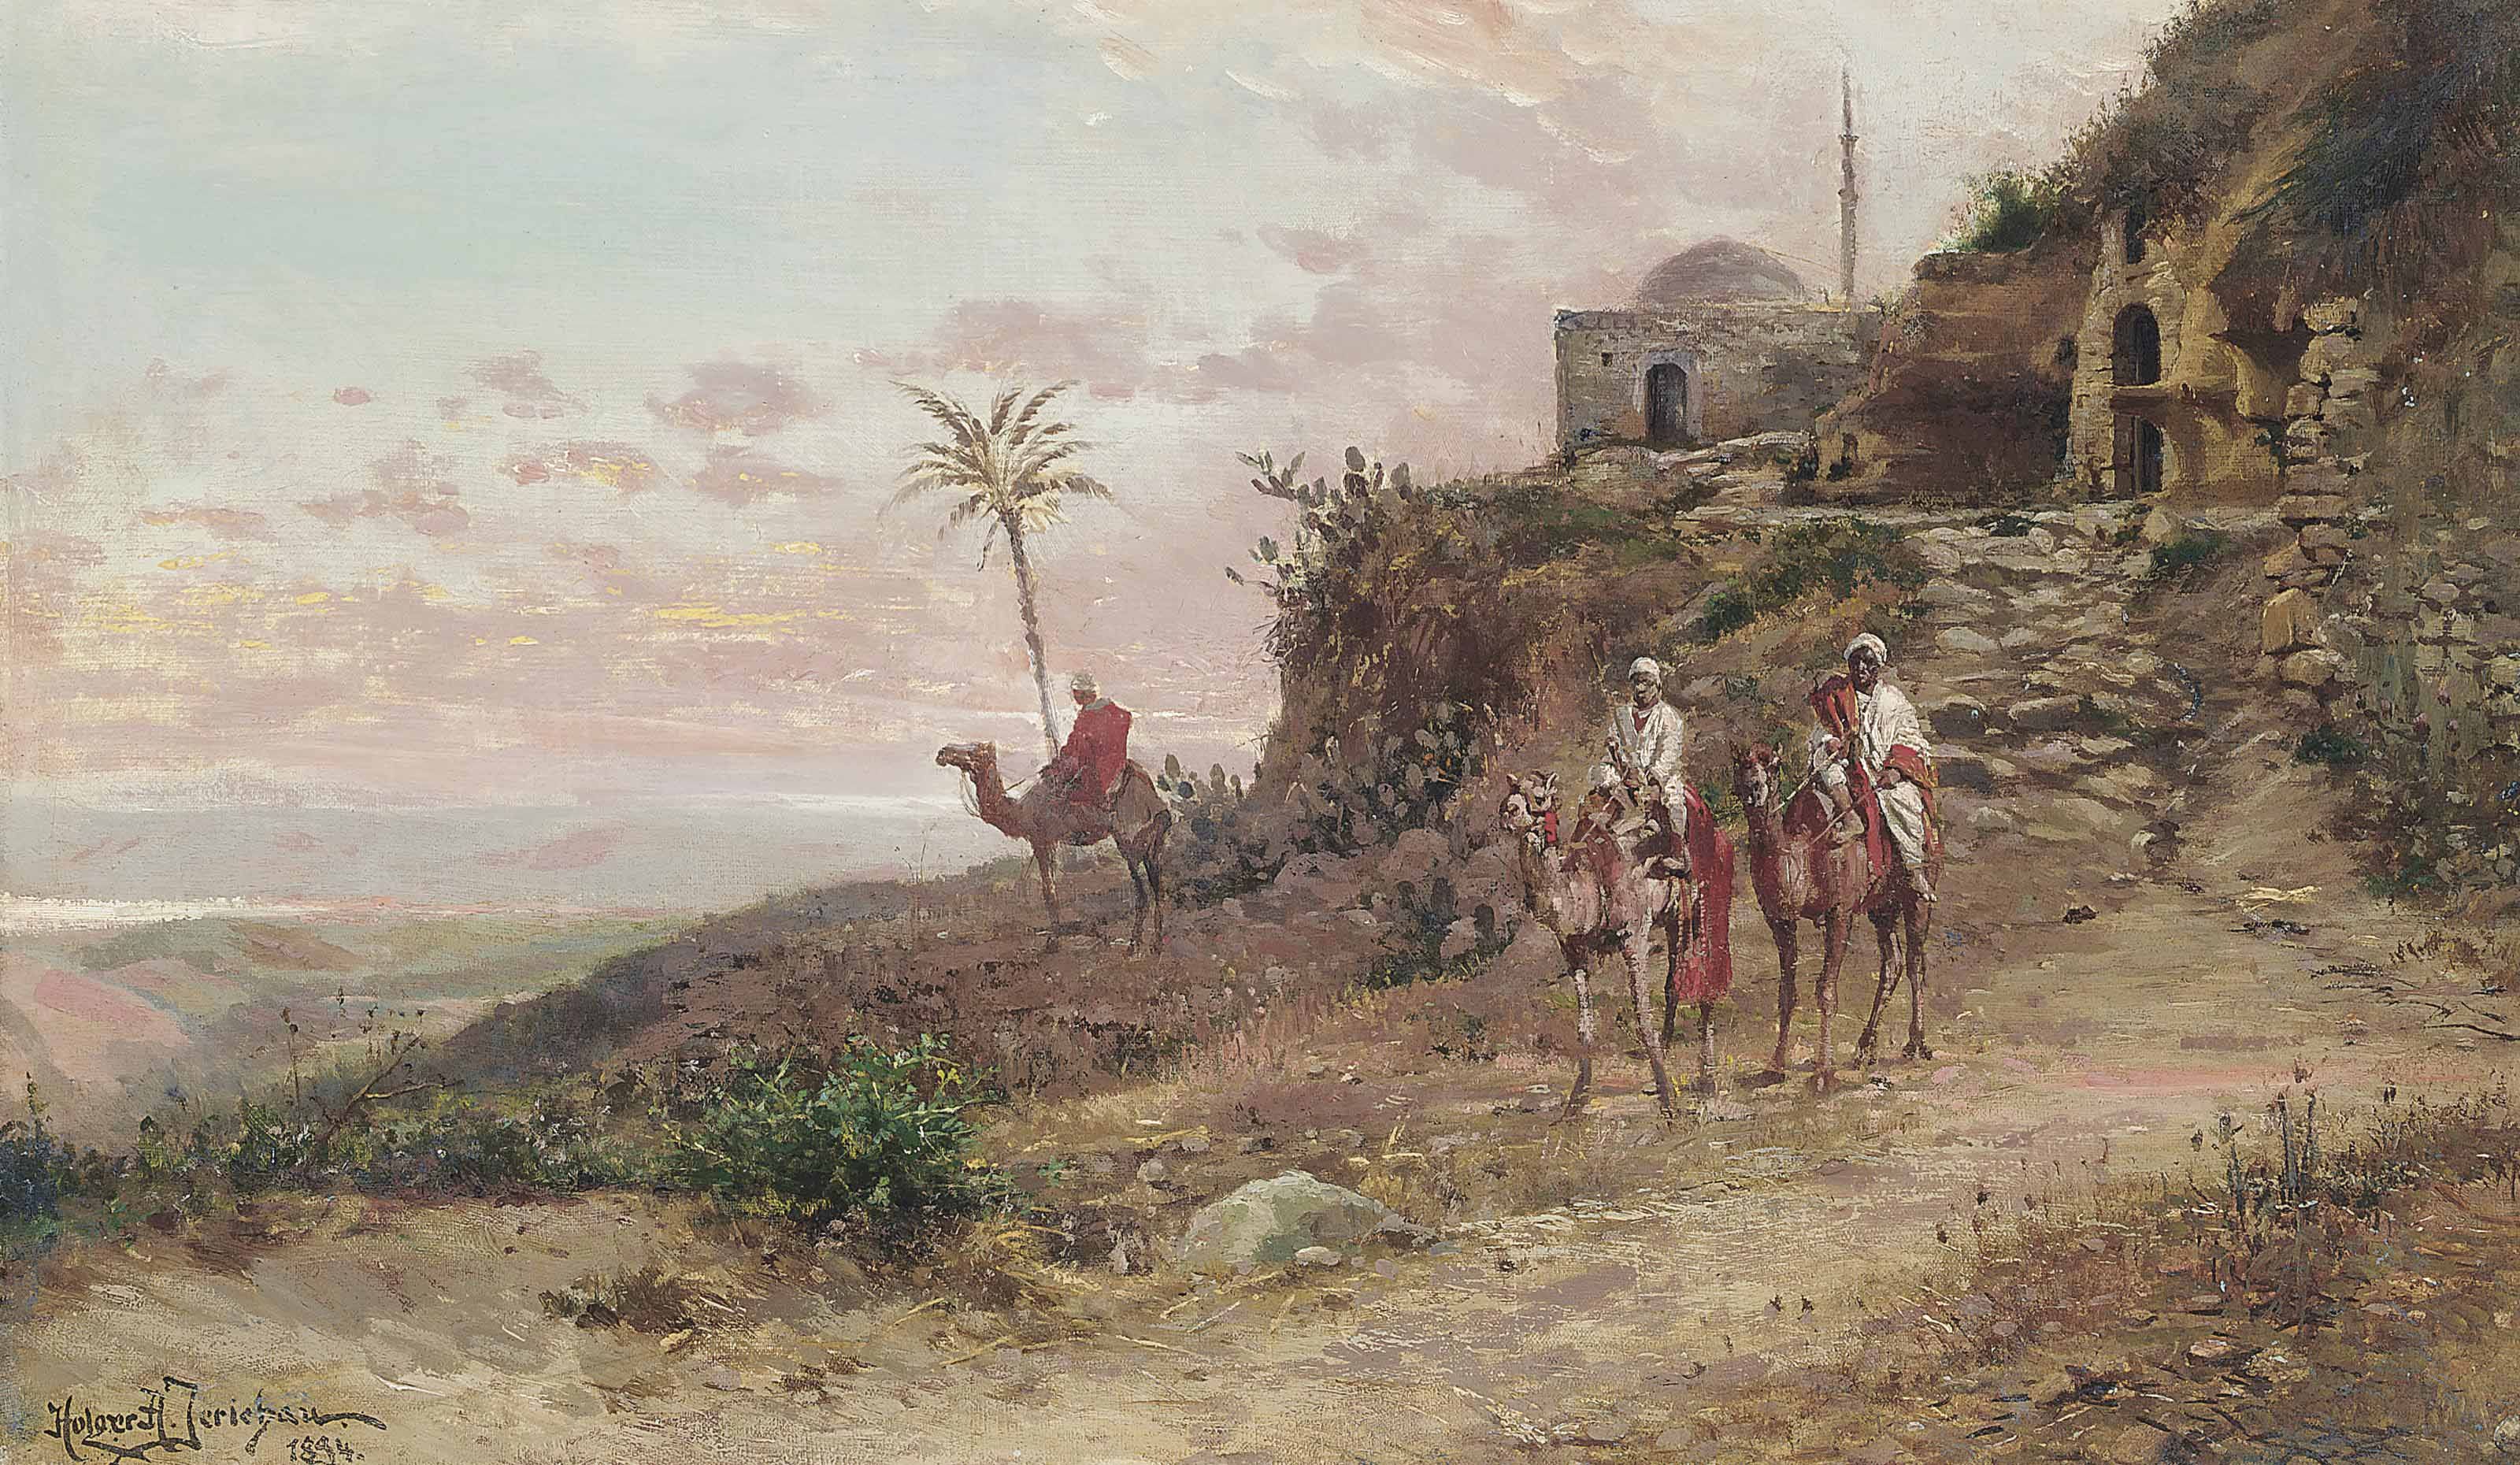 Arab travellers on camels at an outlook